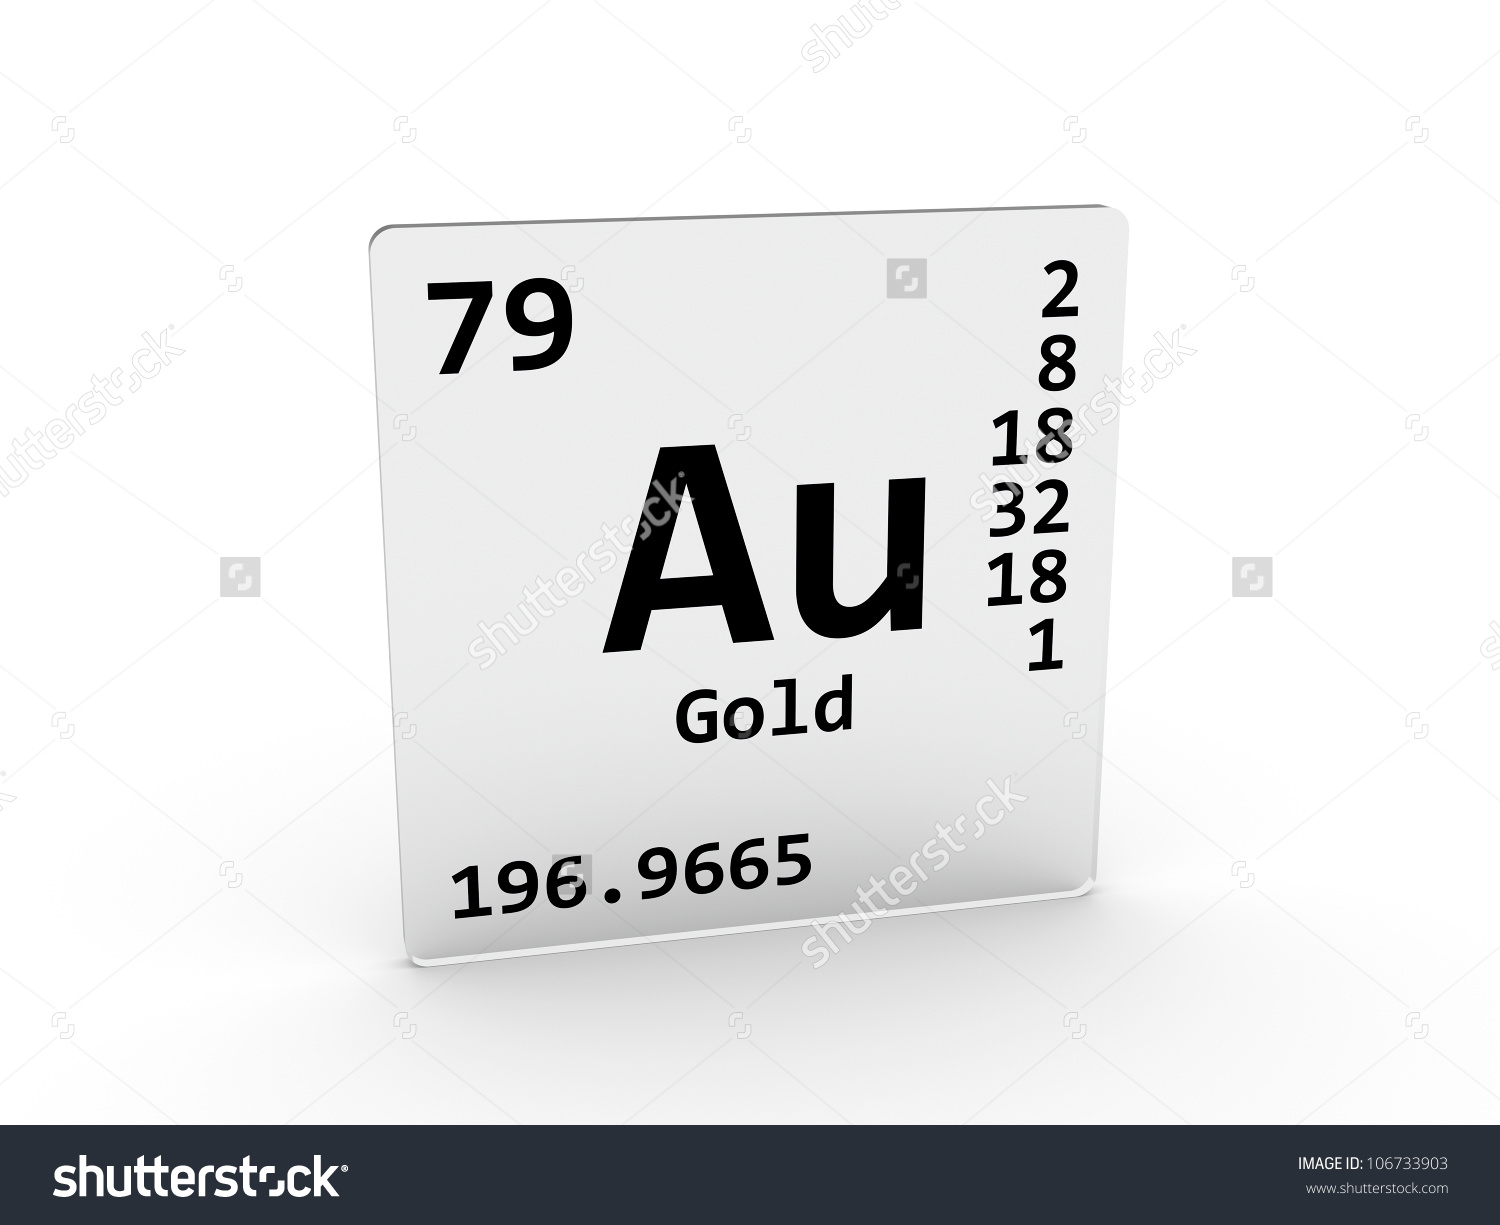 Gold periodic table symbol clipart clipground gold symbol au element periodic table stock illustration 106733903 urtaz Image collections